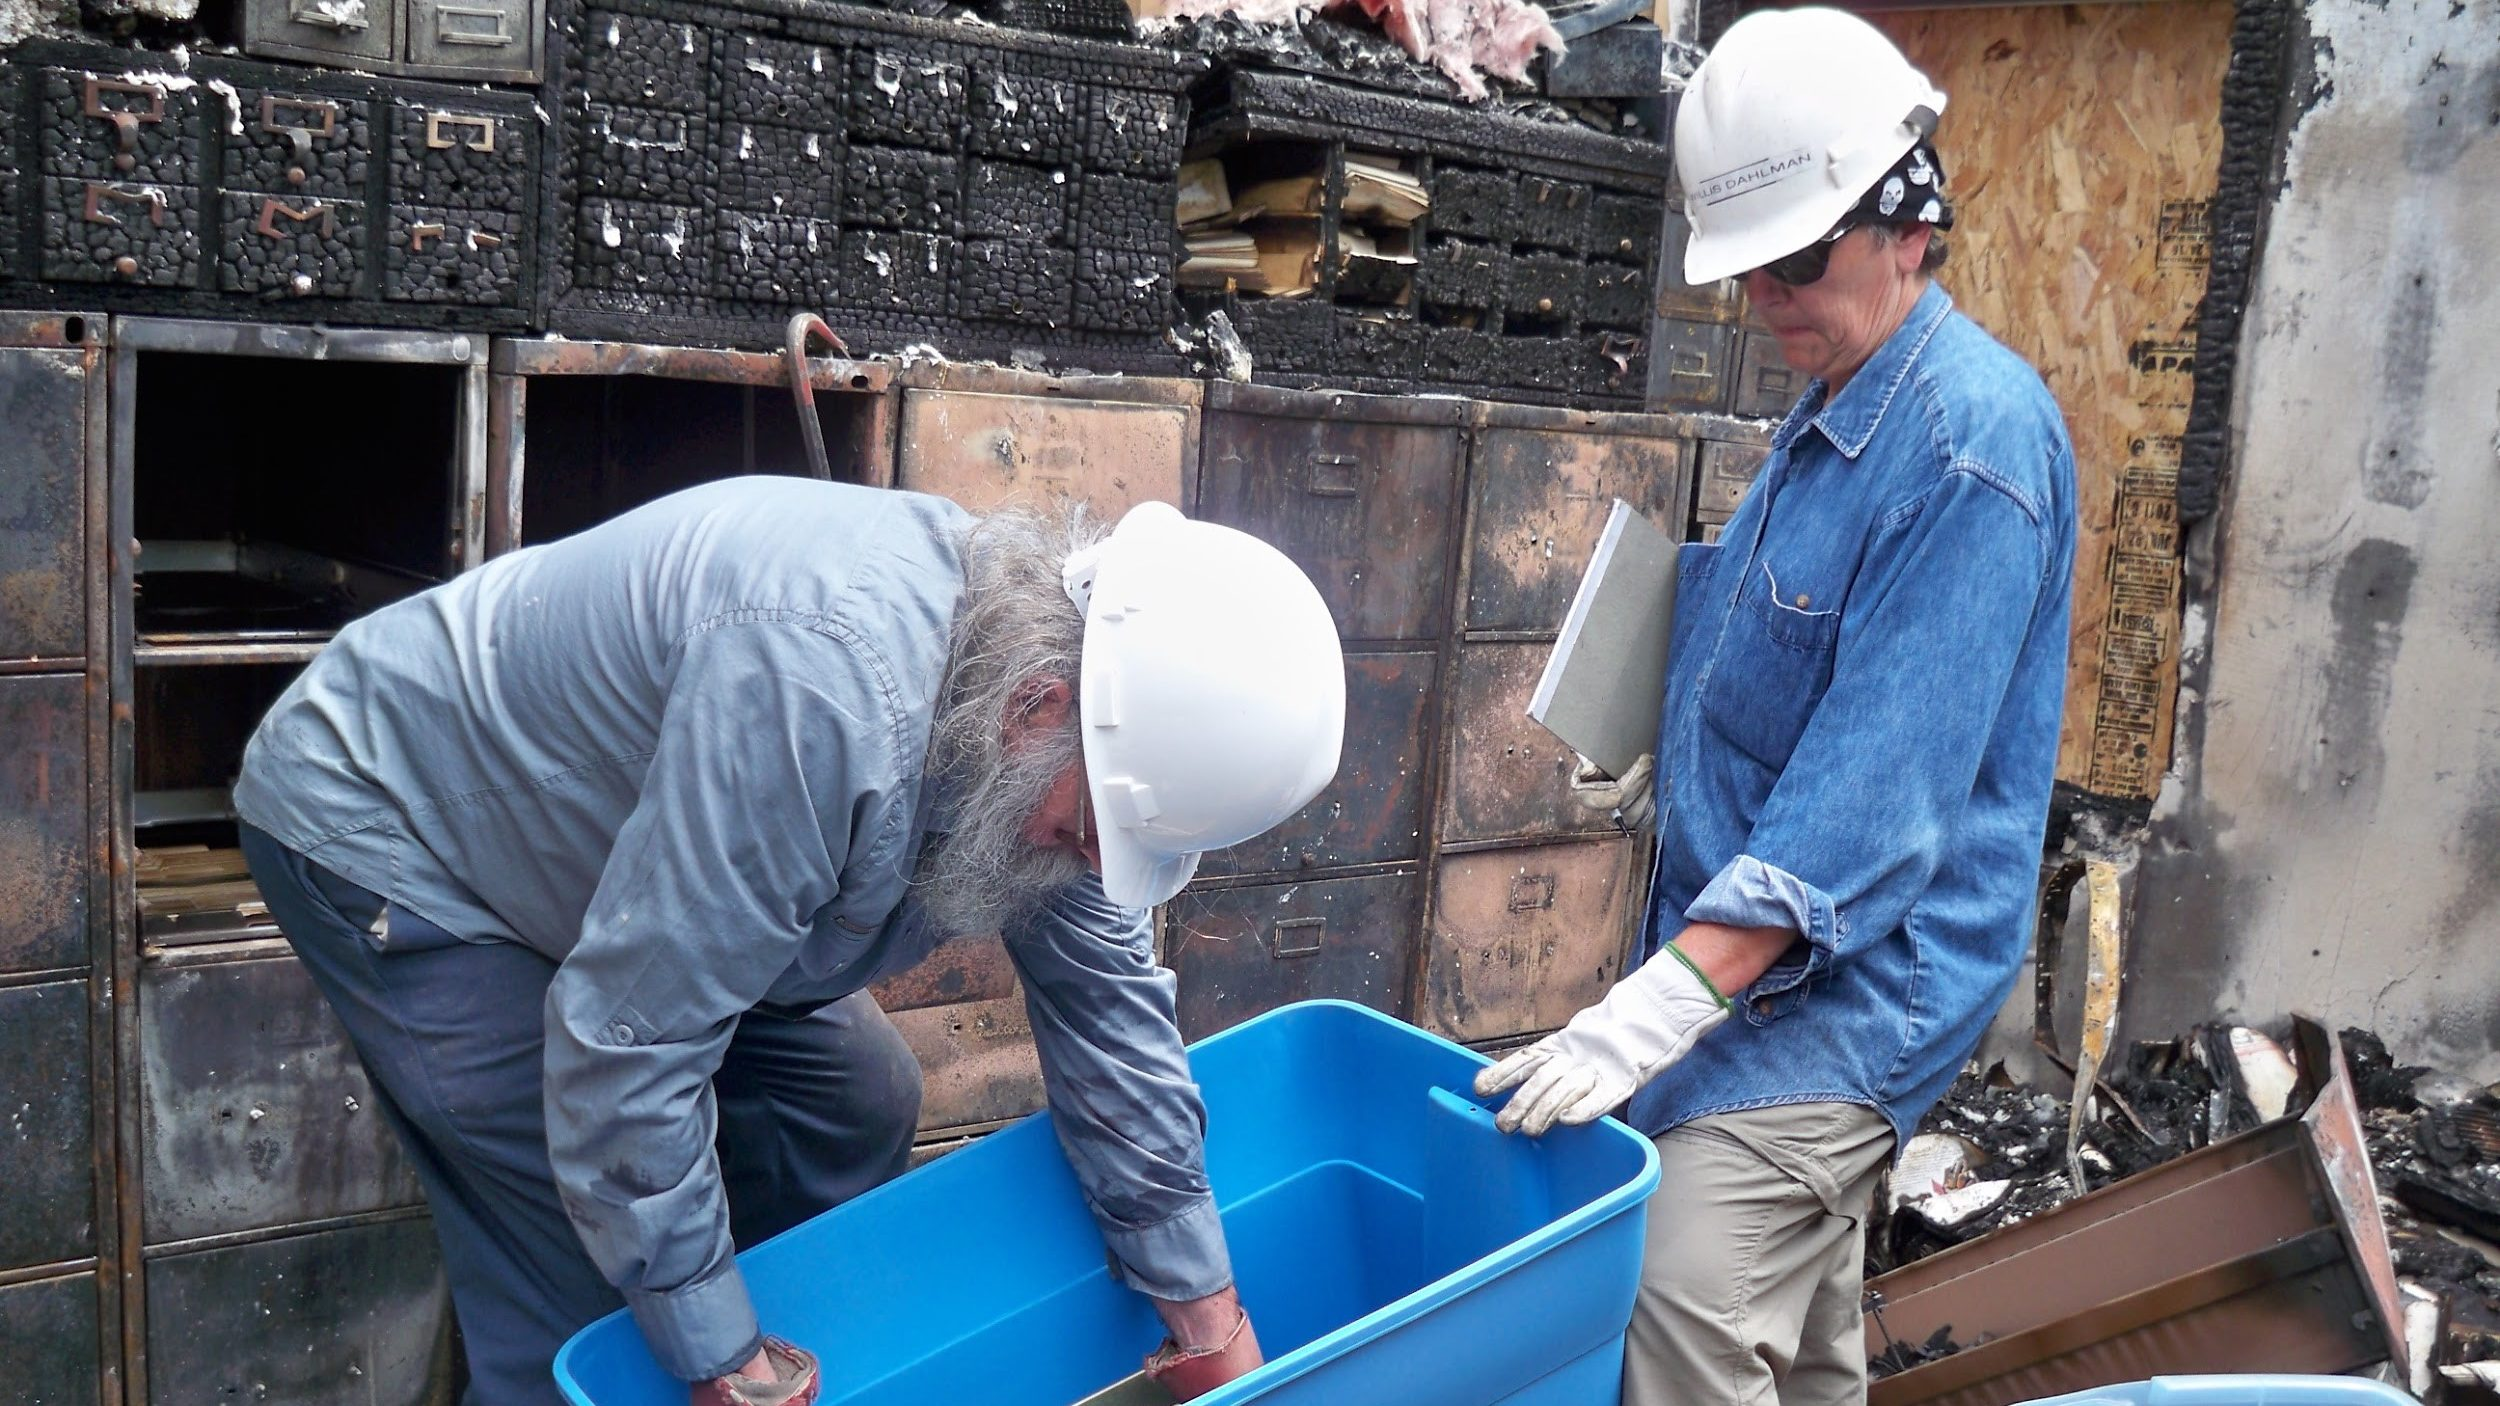 Two people stand in the midst of a destroyed collections facility, wearing hard hats and carrying a plastic bin for retrieving salvageable items.